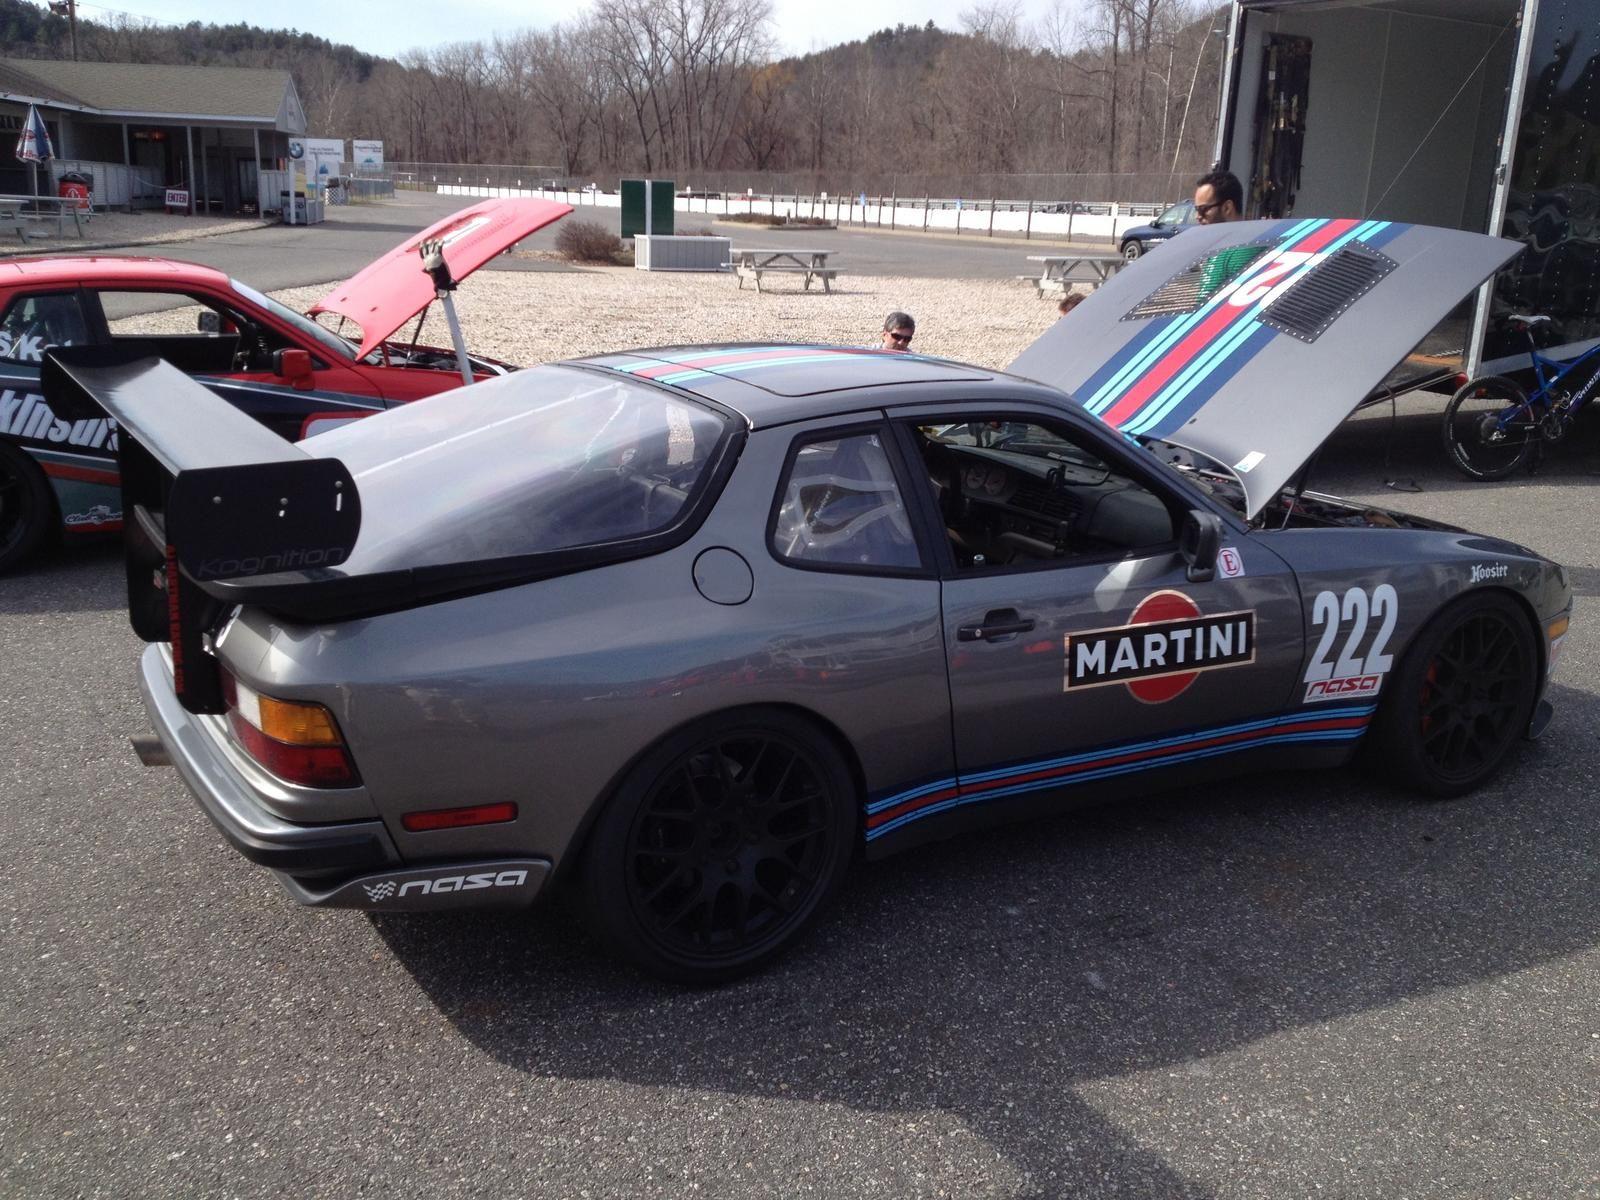 87 Porsche 944 Turbo Track Car - Rennlist Discussion Forums | 944 ...